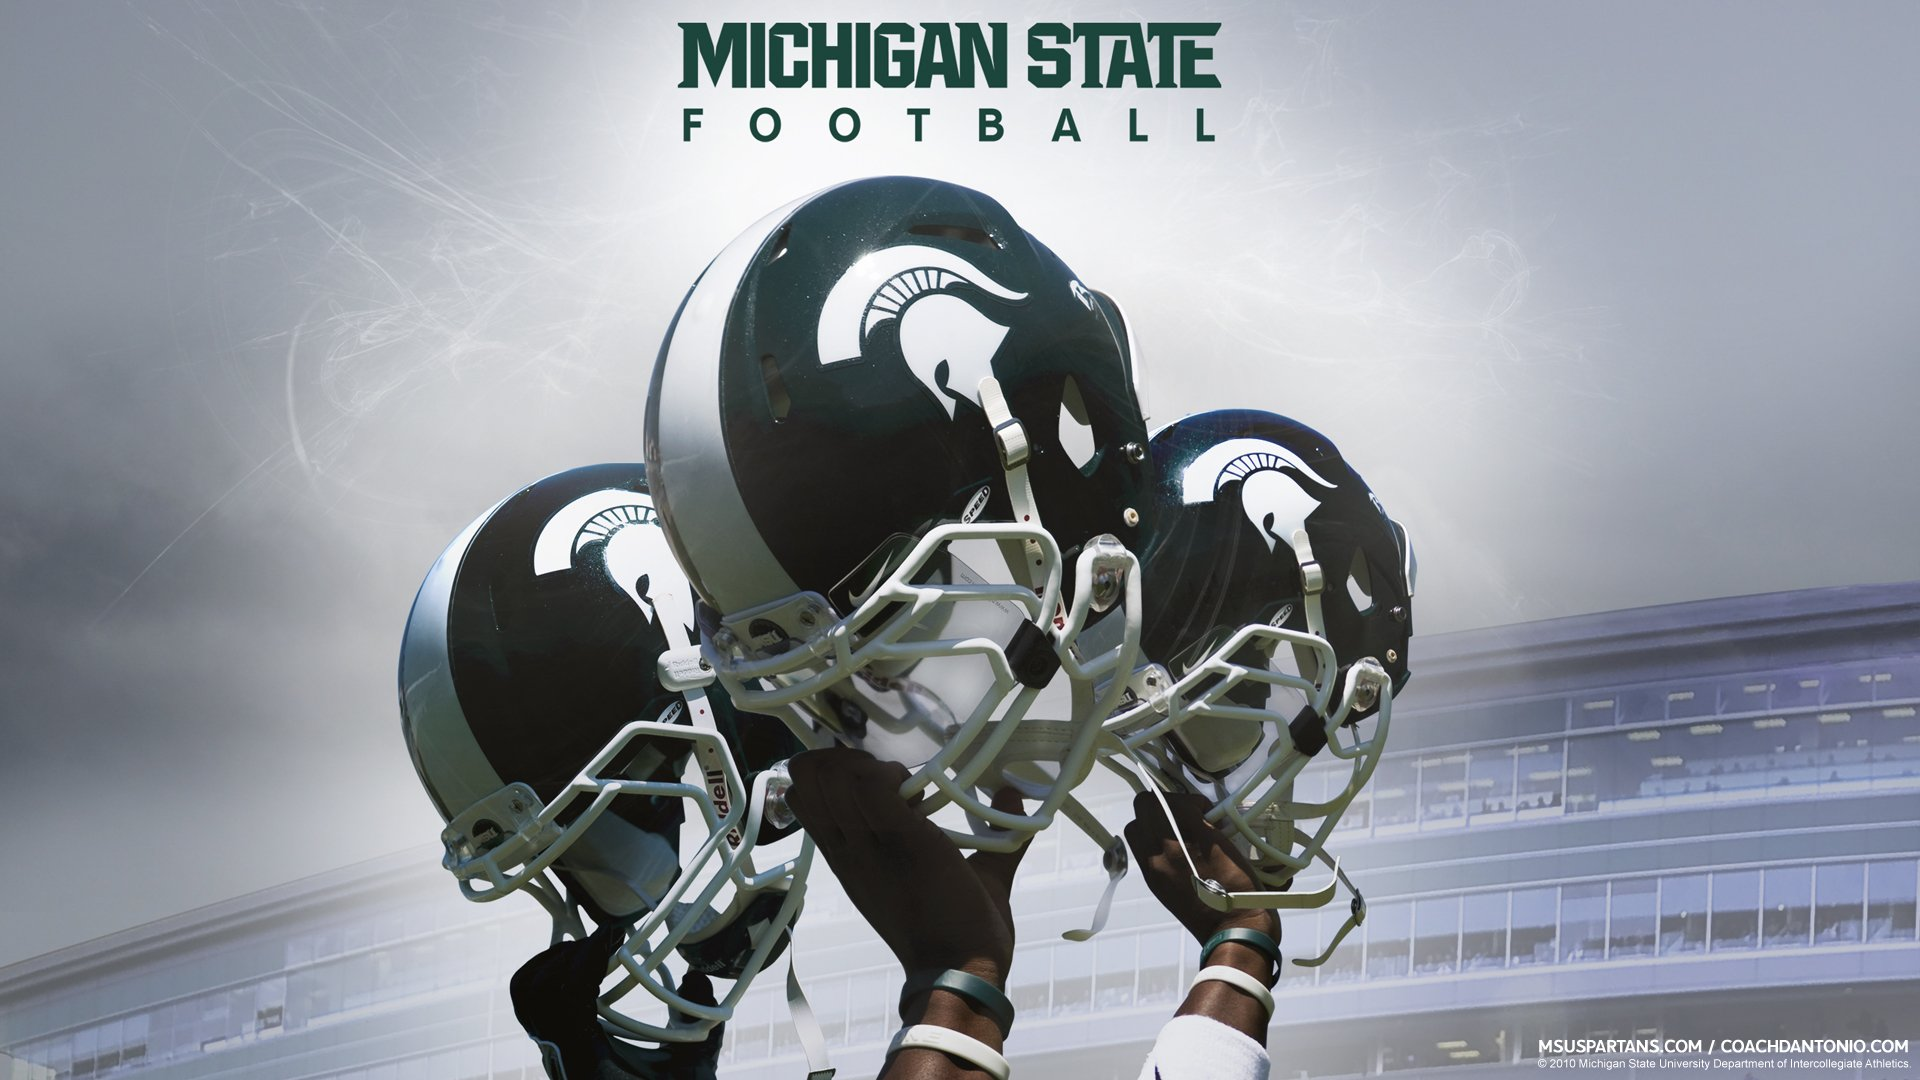 Michigan State Football Wallpapers